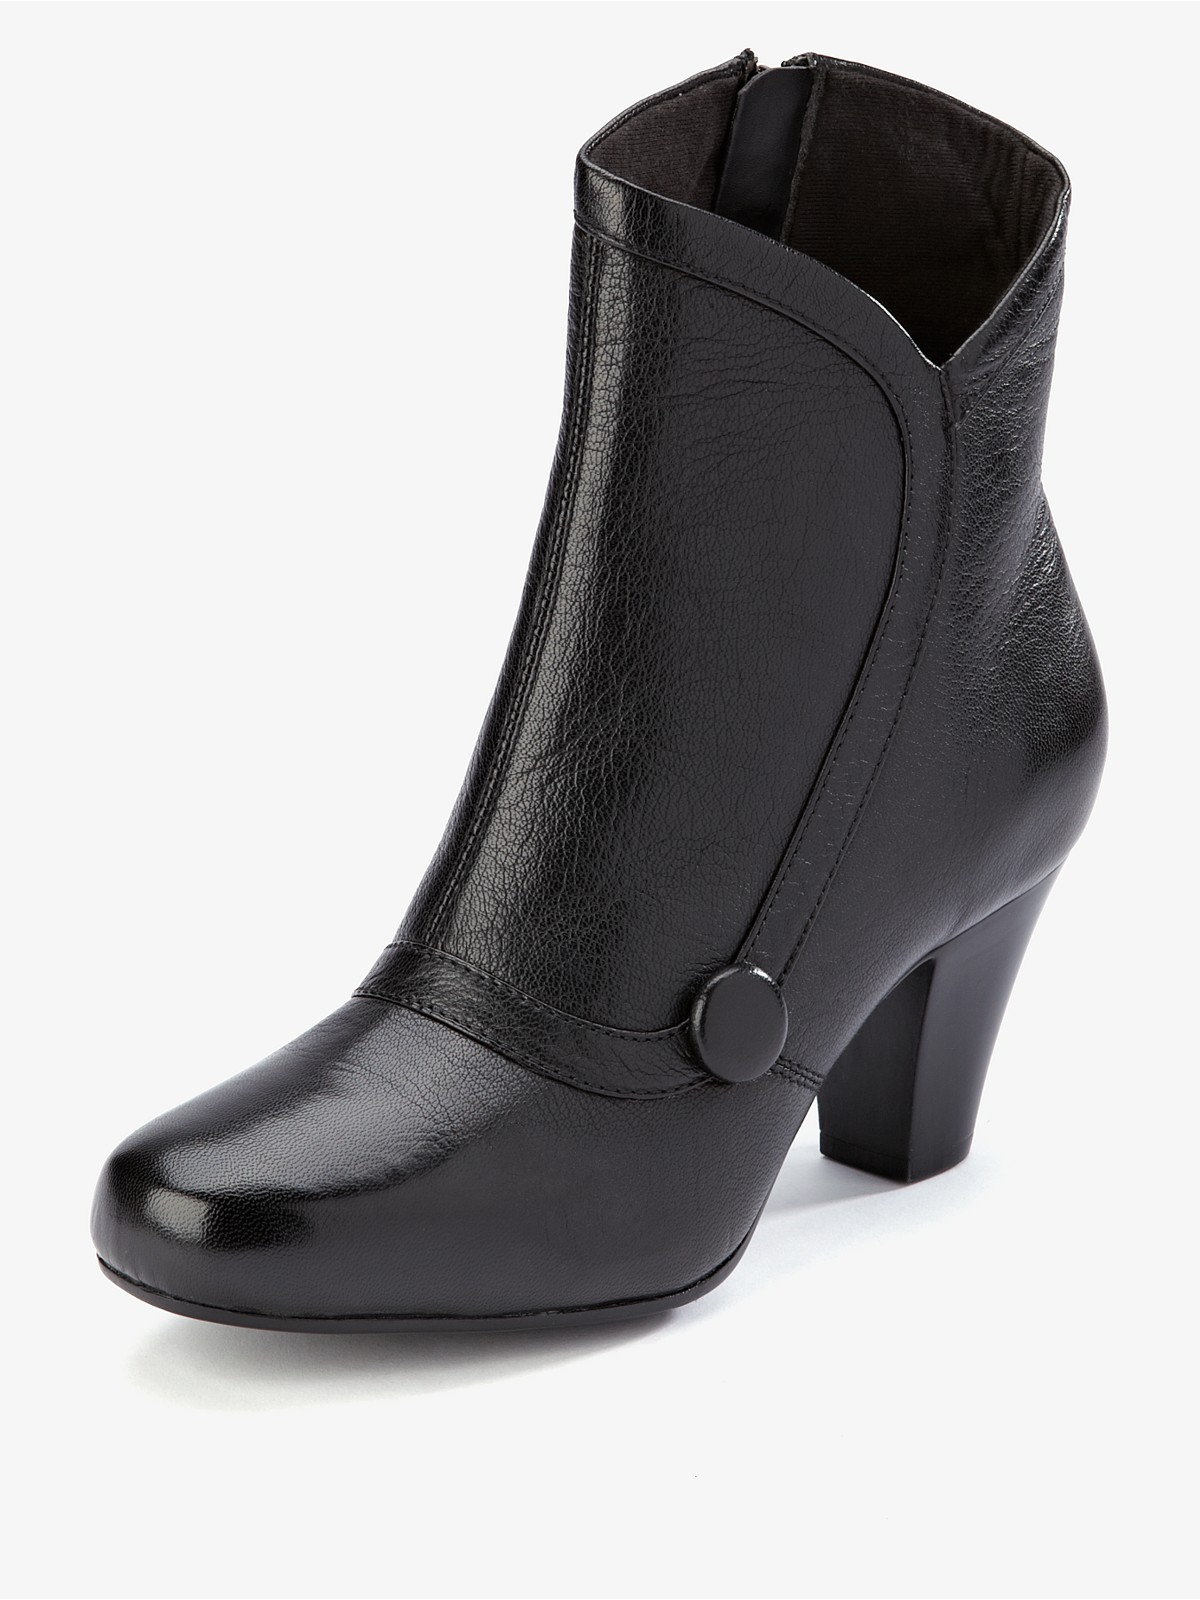 clarks leather lodge park ankle boots in black black